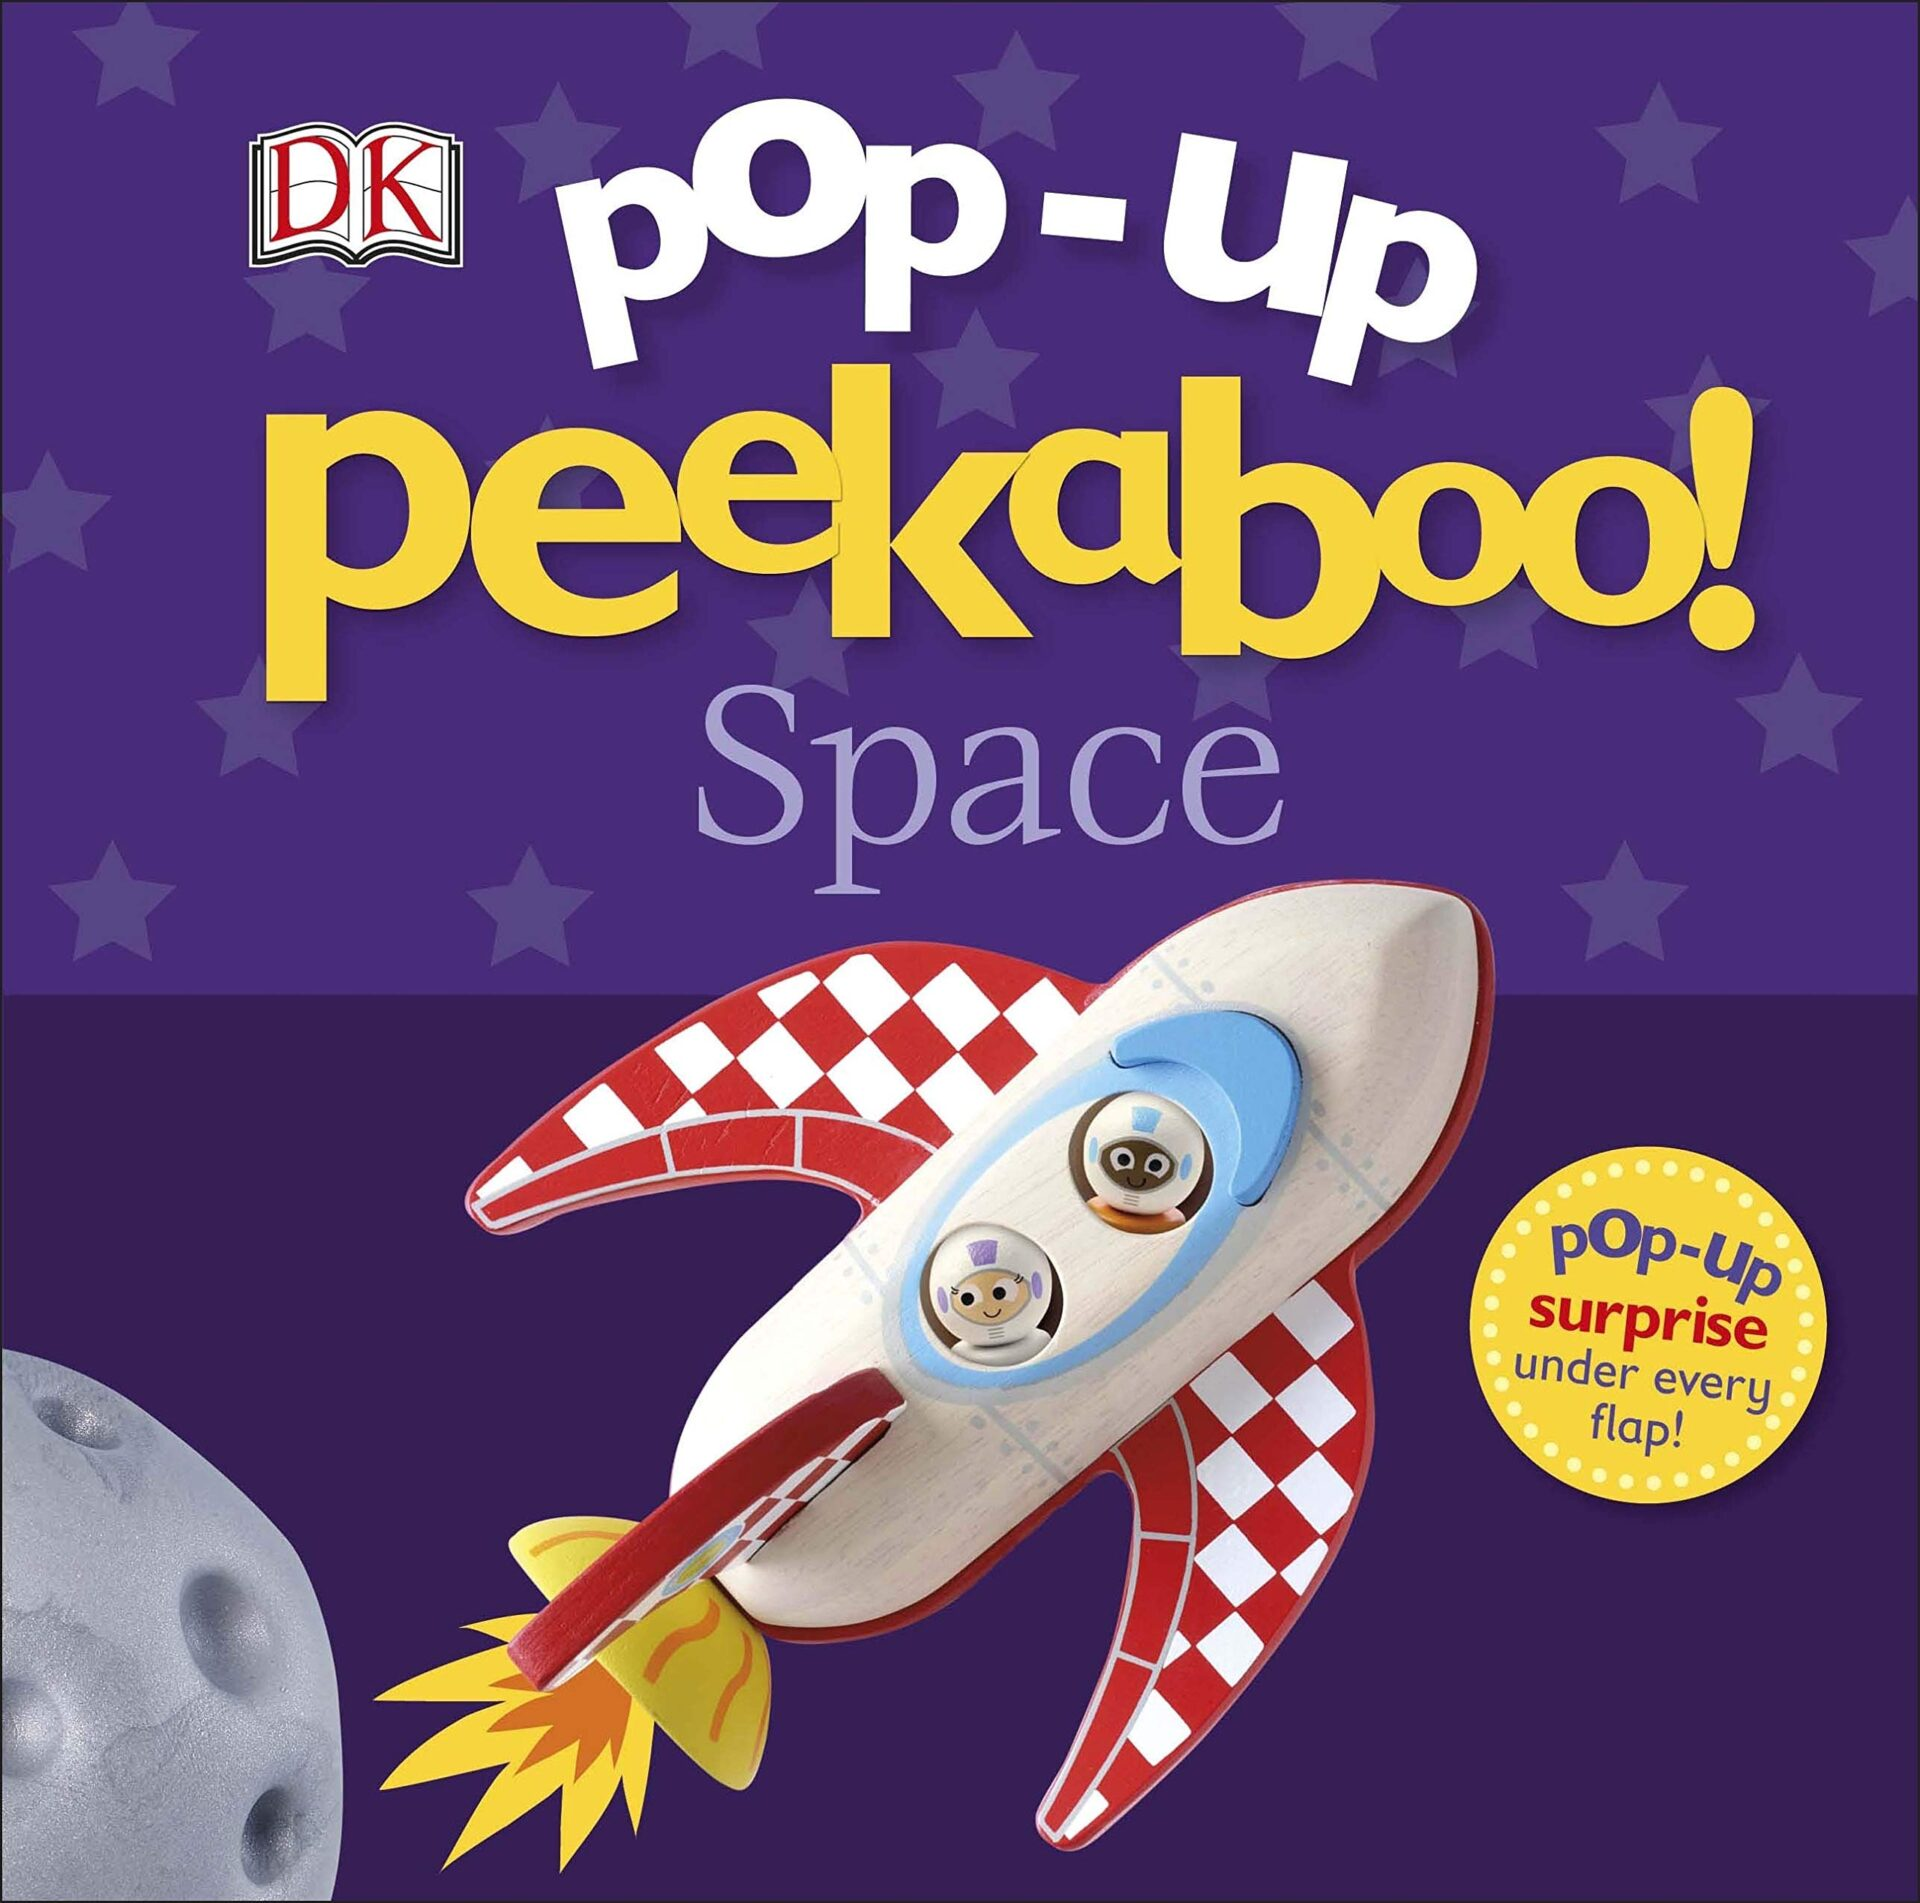 Pop up peekaboo! Space book for 3 year old kids